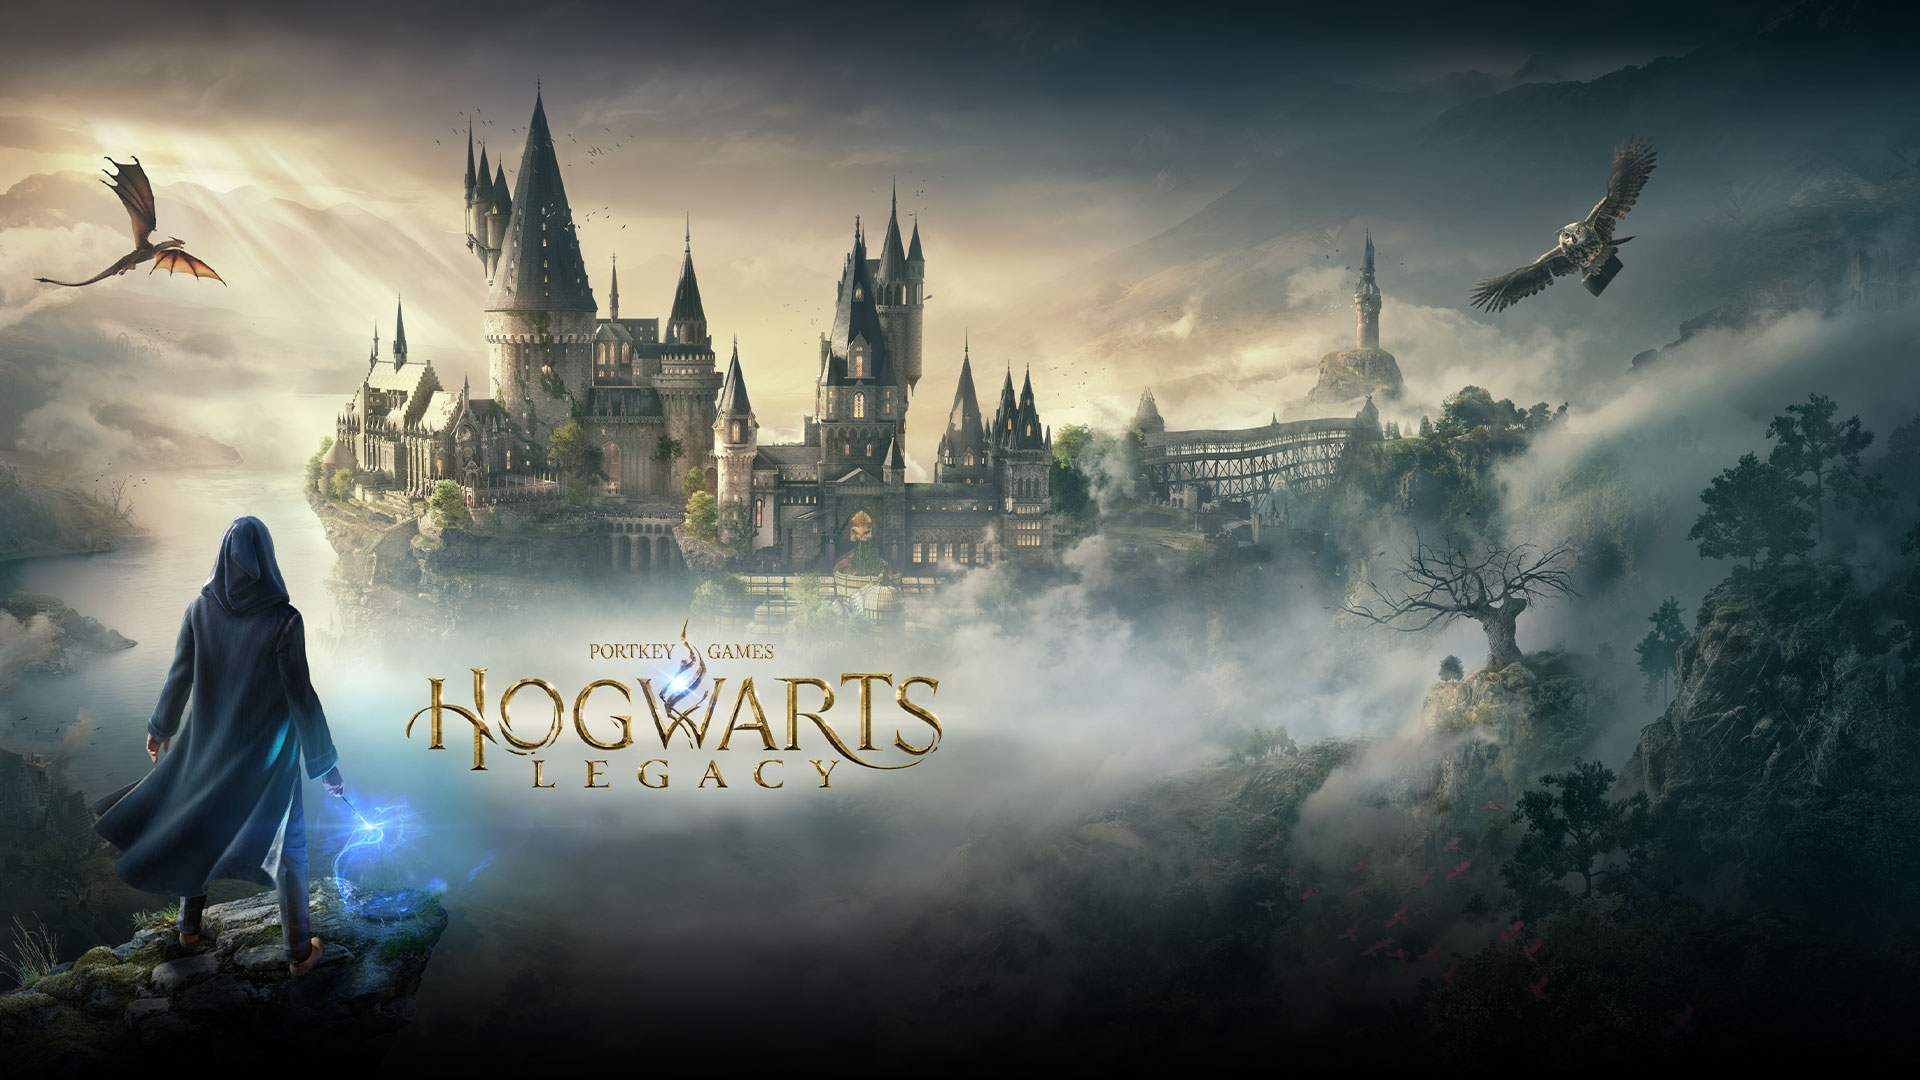 Portkey Games, Hogwarts Legacy, a magical character looking at Hogwarts with an owl and a dragon flying